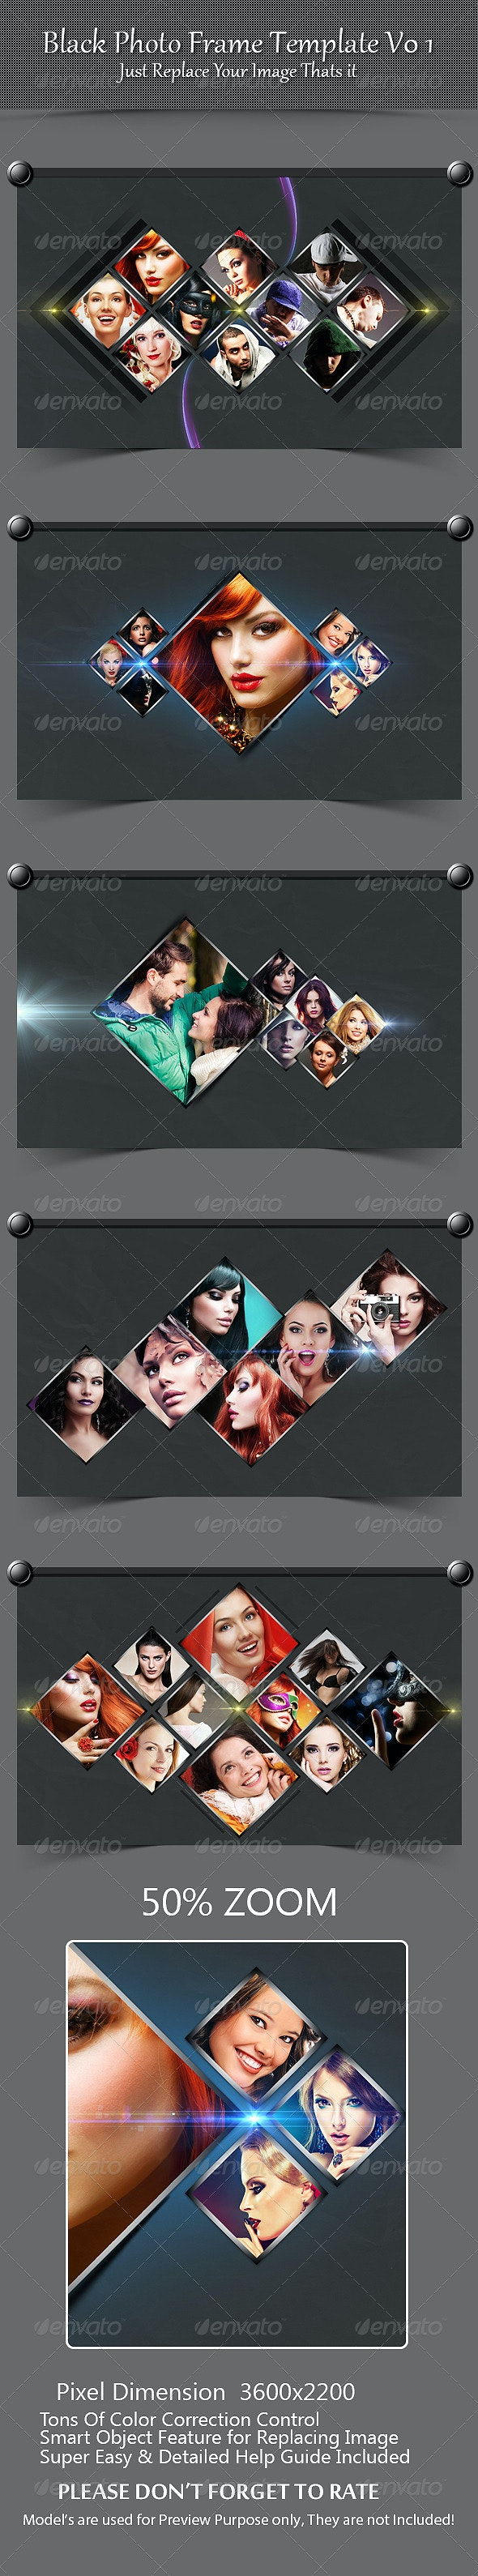 Black Photo Frame Template V01 - Photo Templates Graphics